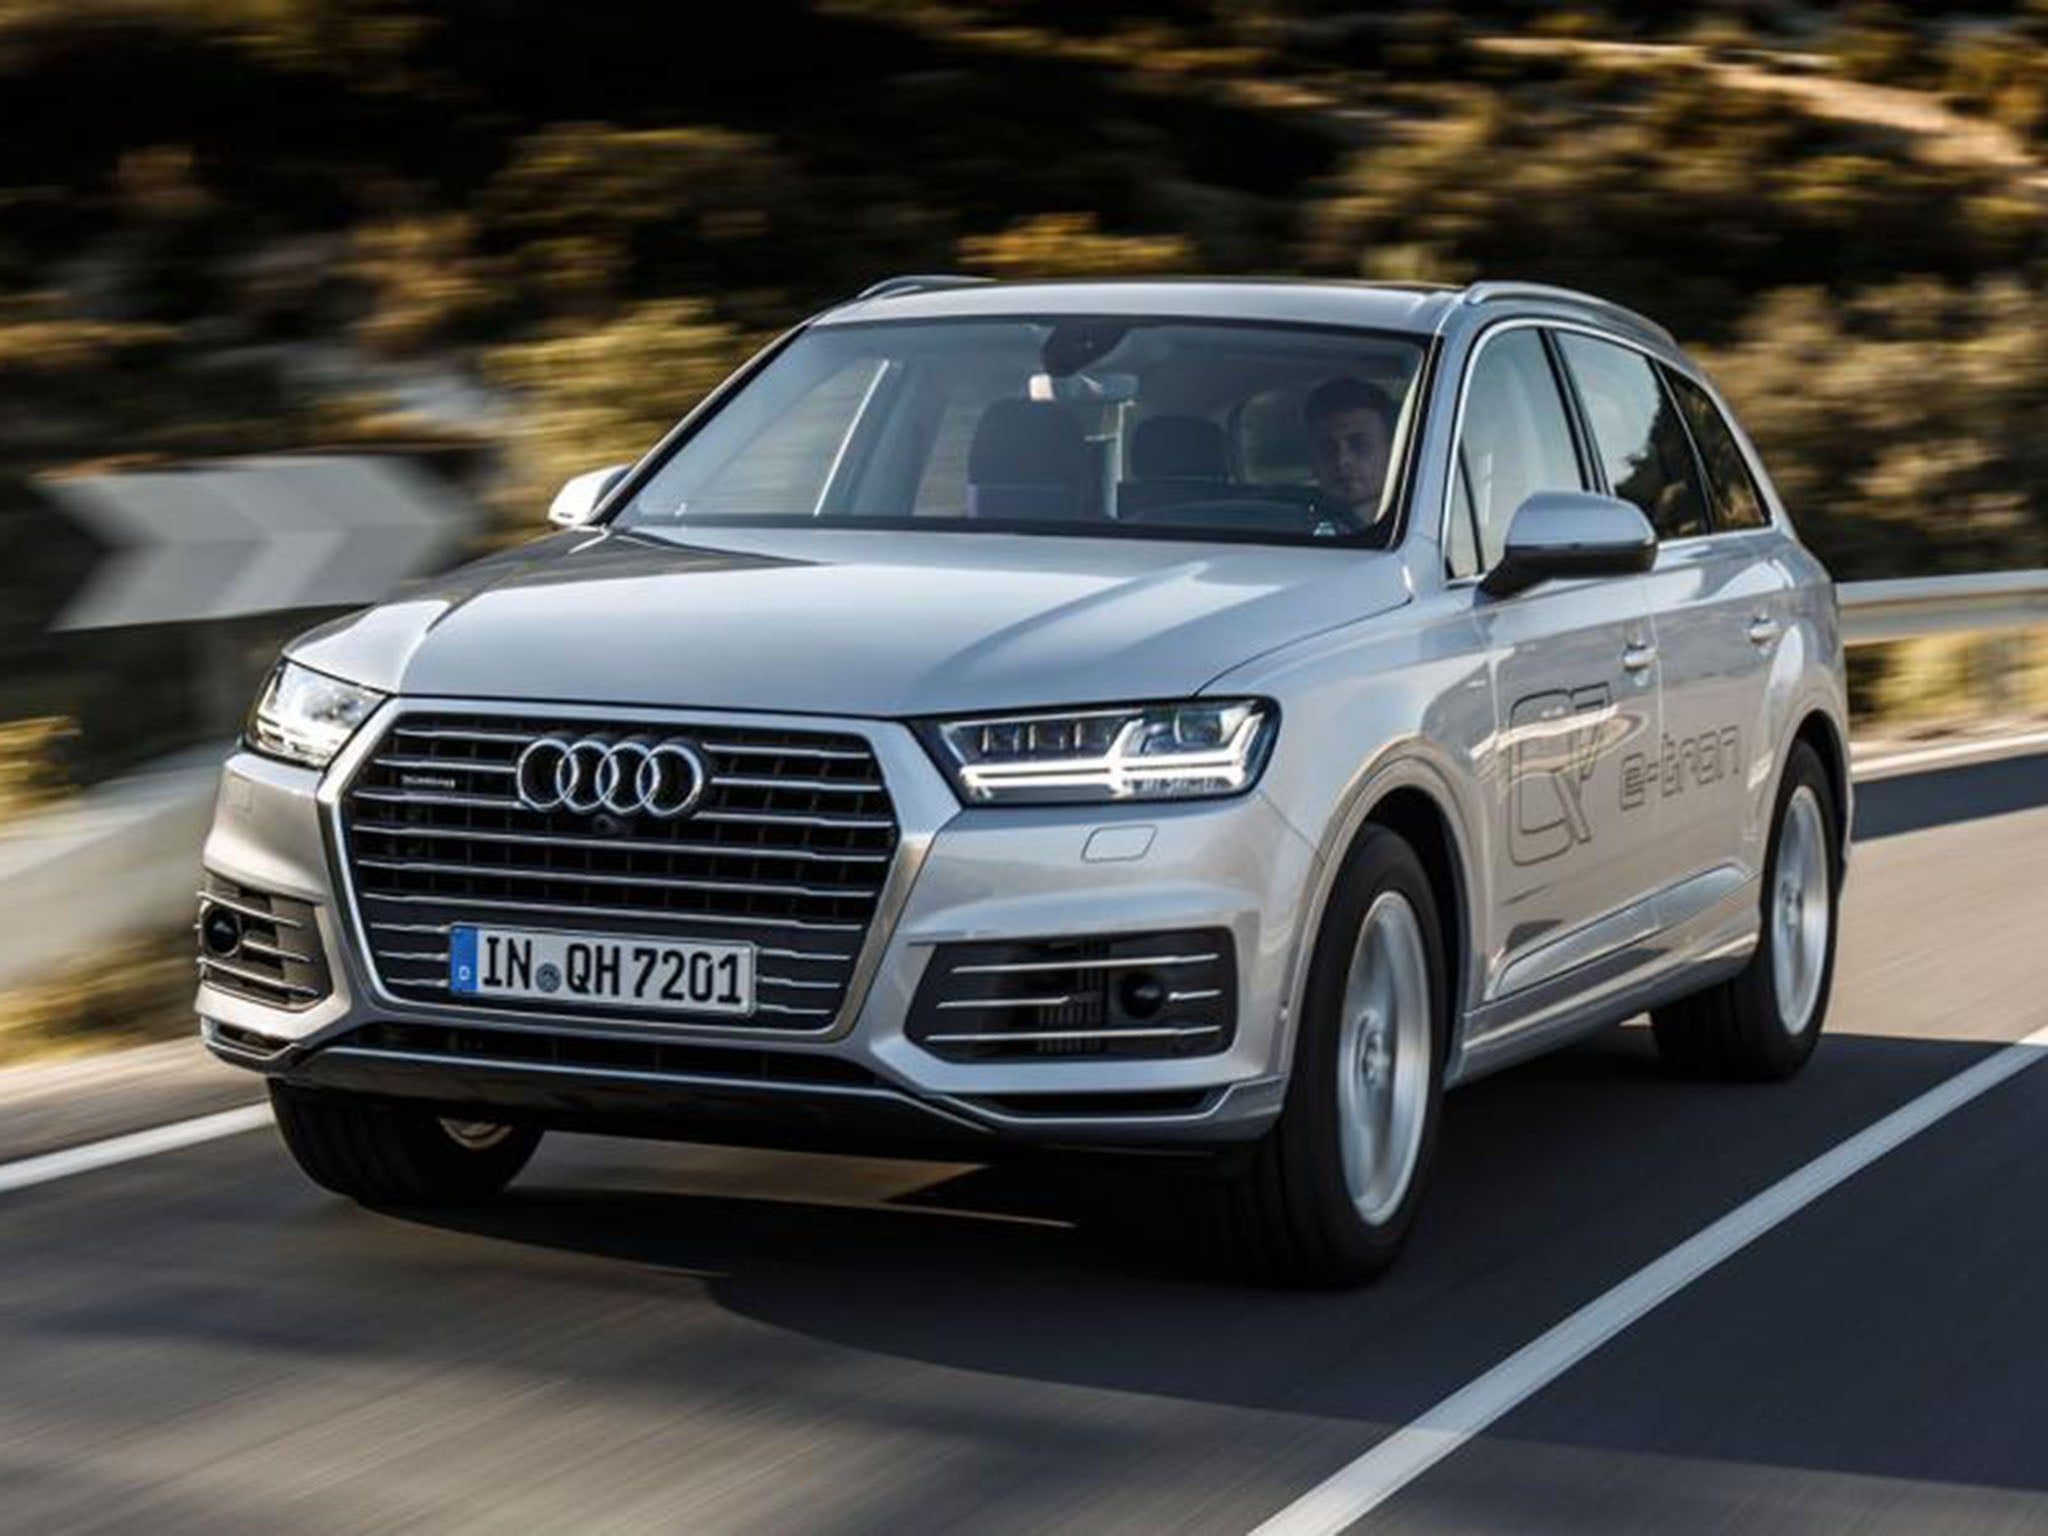 audi q7 e tron introducing their new plug in hybrid suv the independent. Black Bedroom Furniture Sets. Home Design Ideas